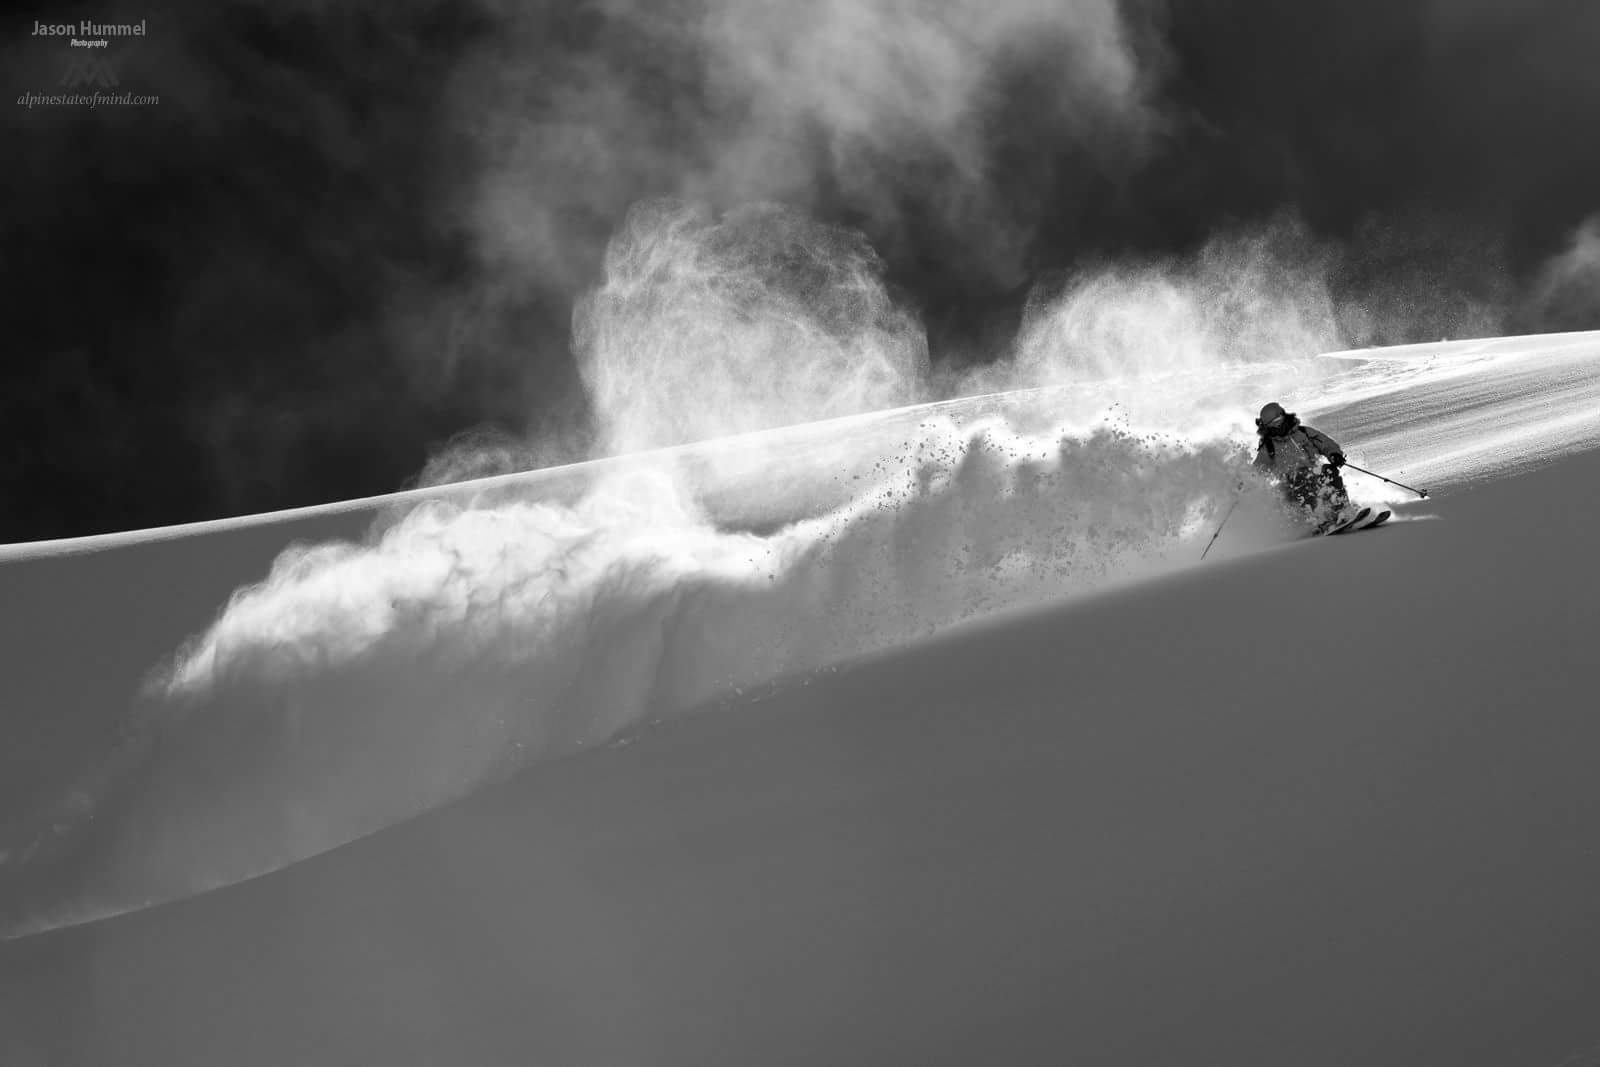 Adam Roberts ripping it. image: jason hummel photography